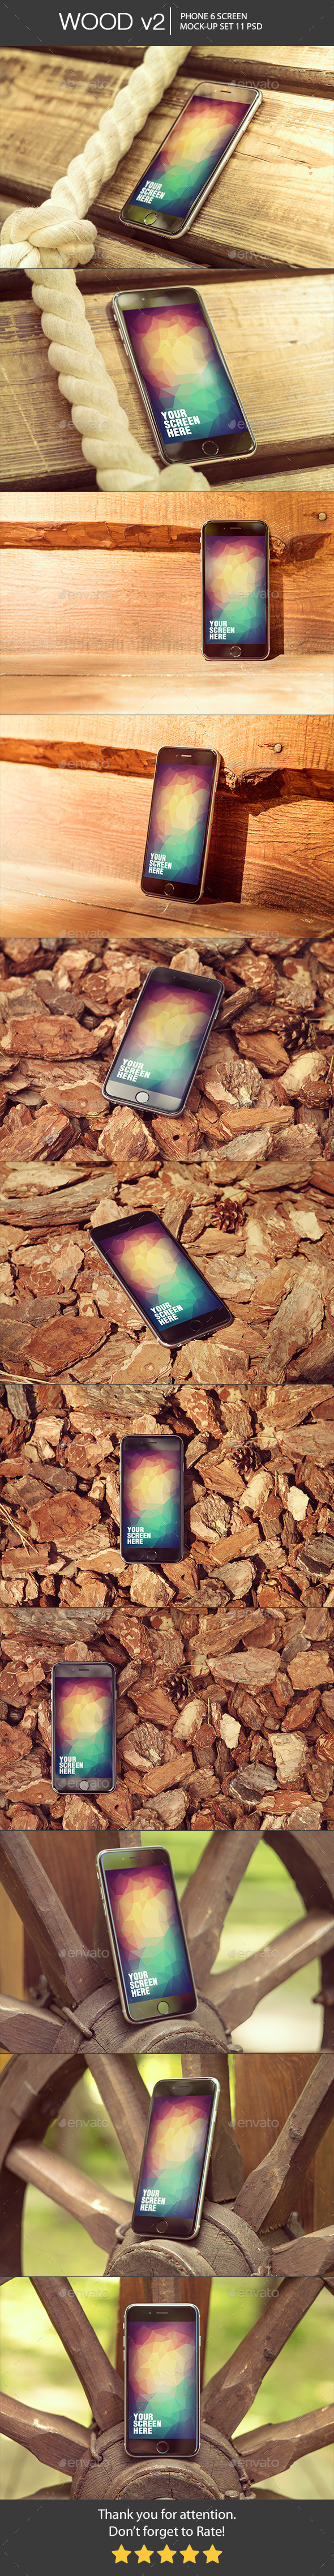 Wood v2 Phone 6 Mock-Up - Mobile Displays